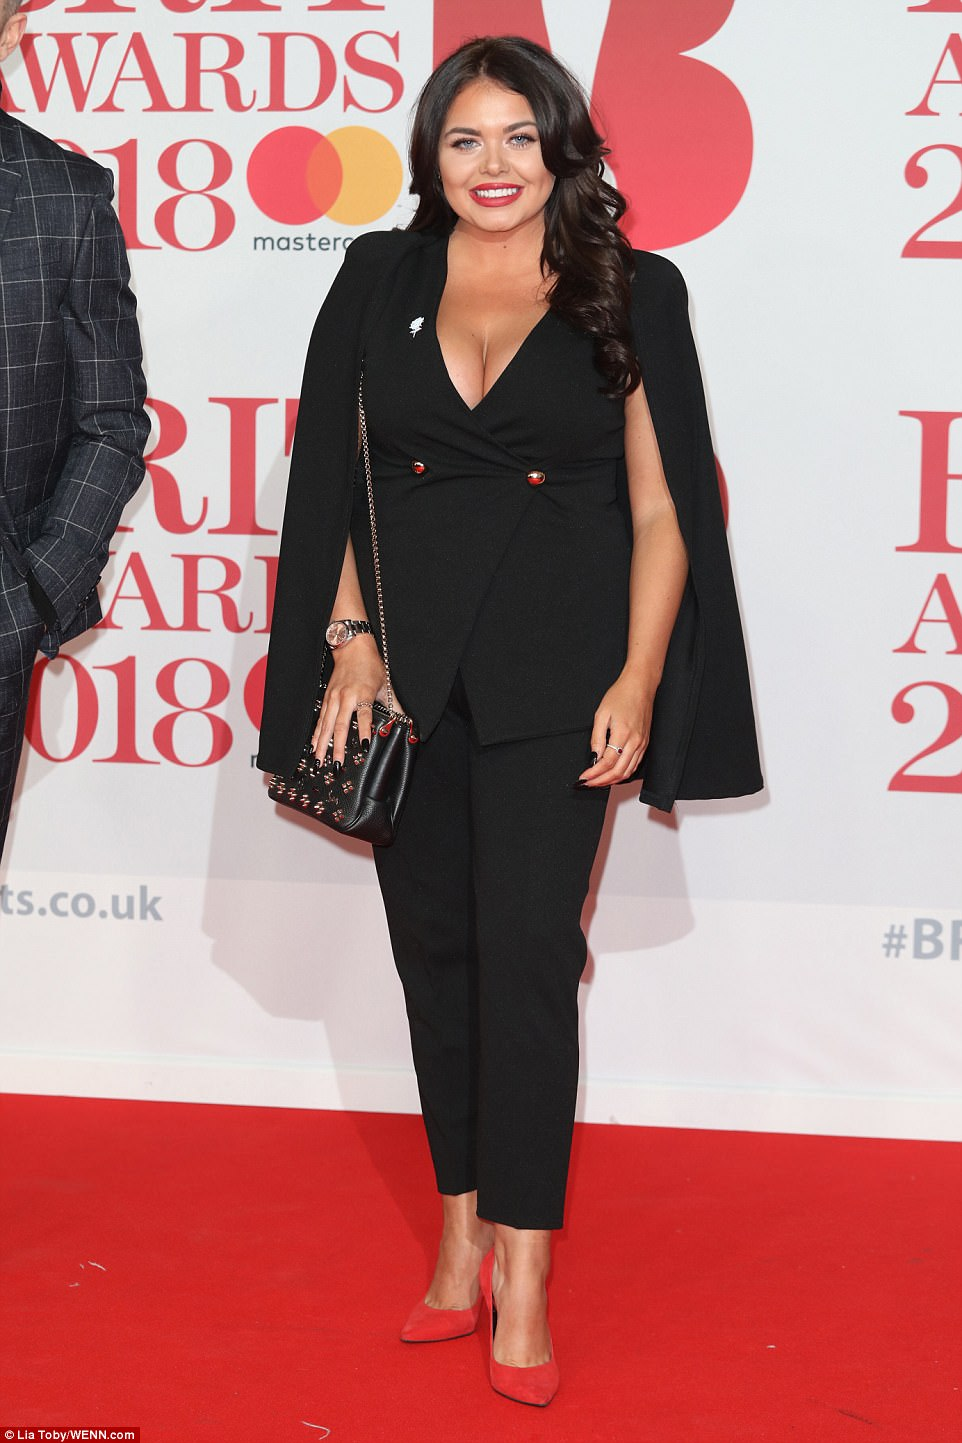 Scarlett Moffatt slipped her killer curves into a plunging black cape-style blazer for the star-studded bash